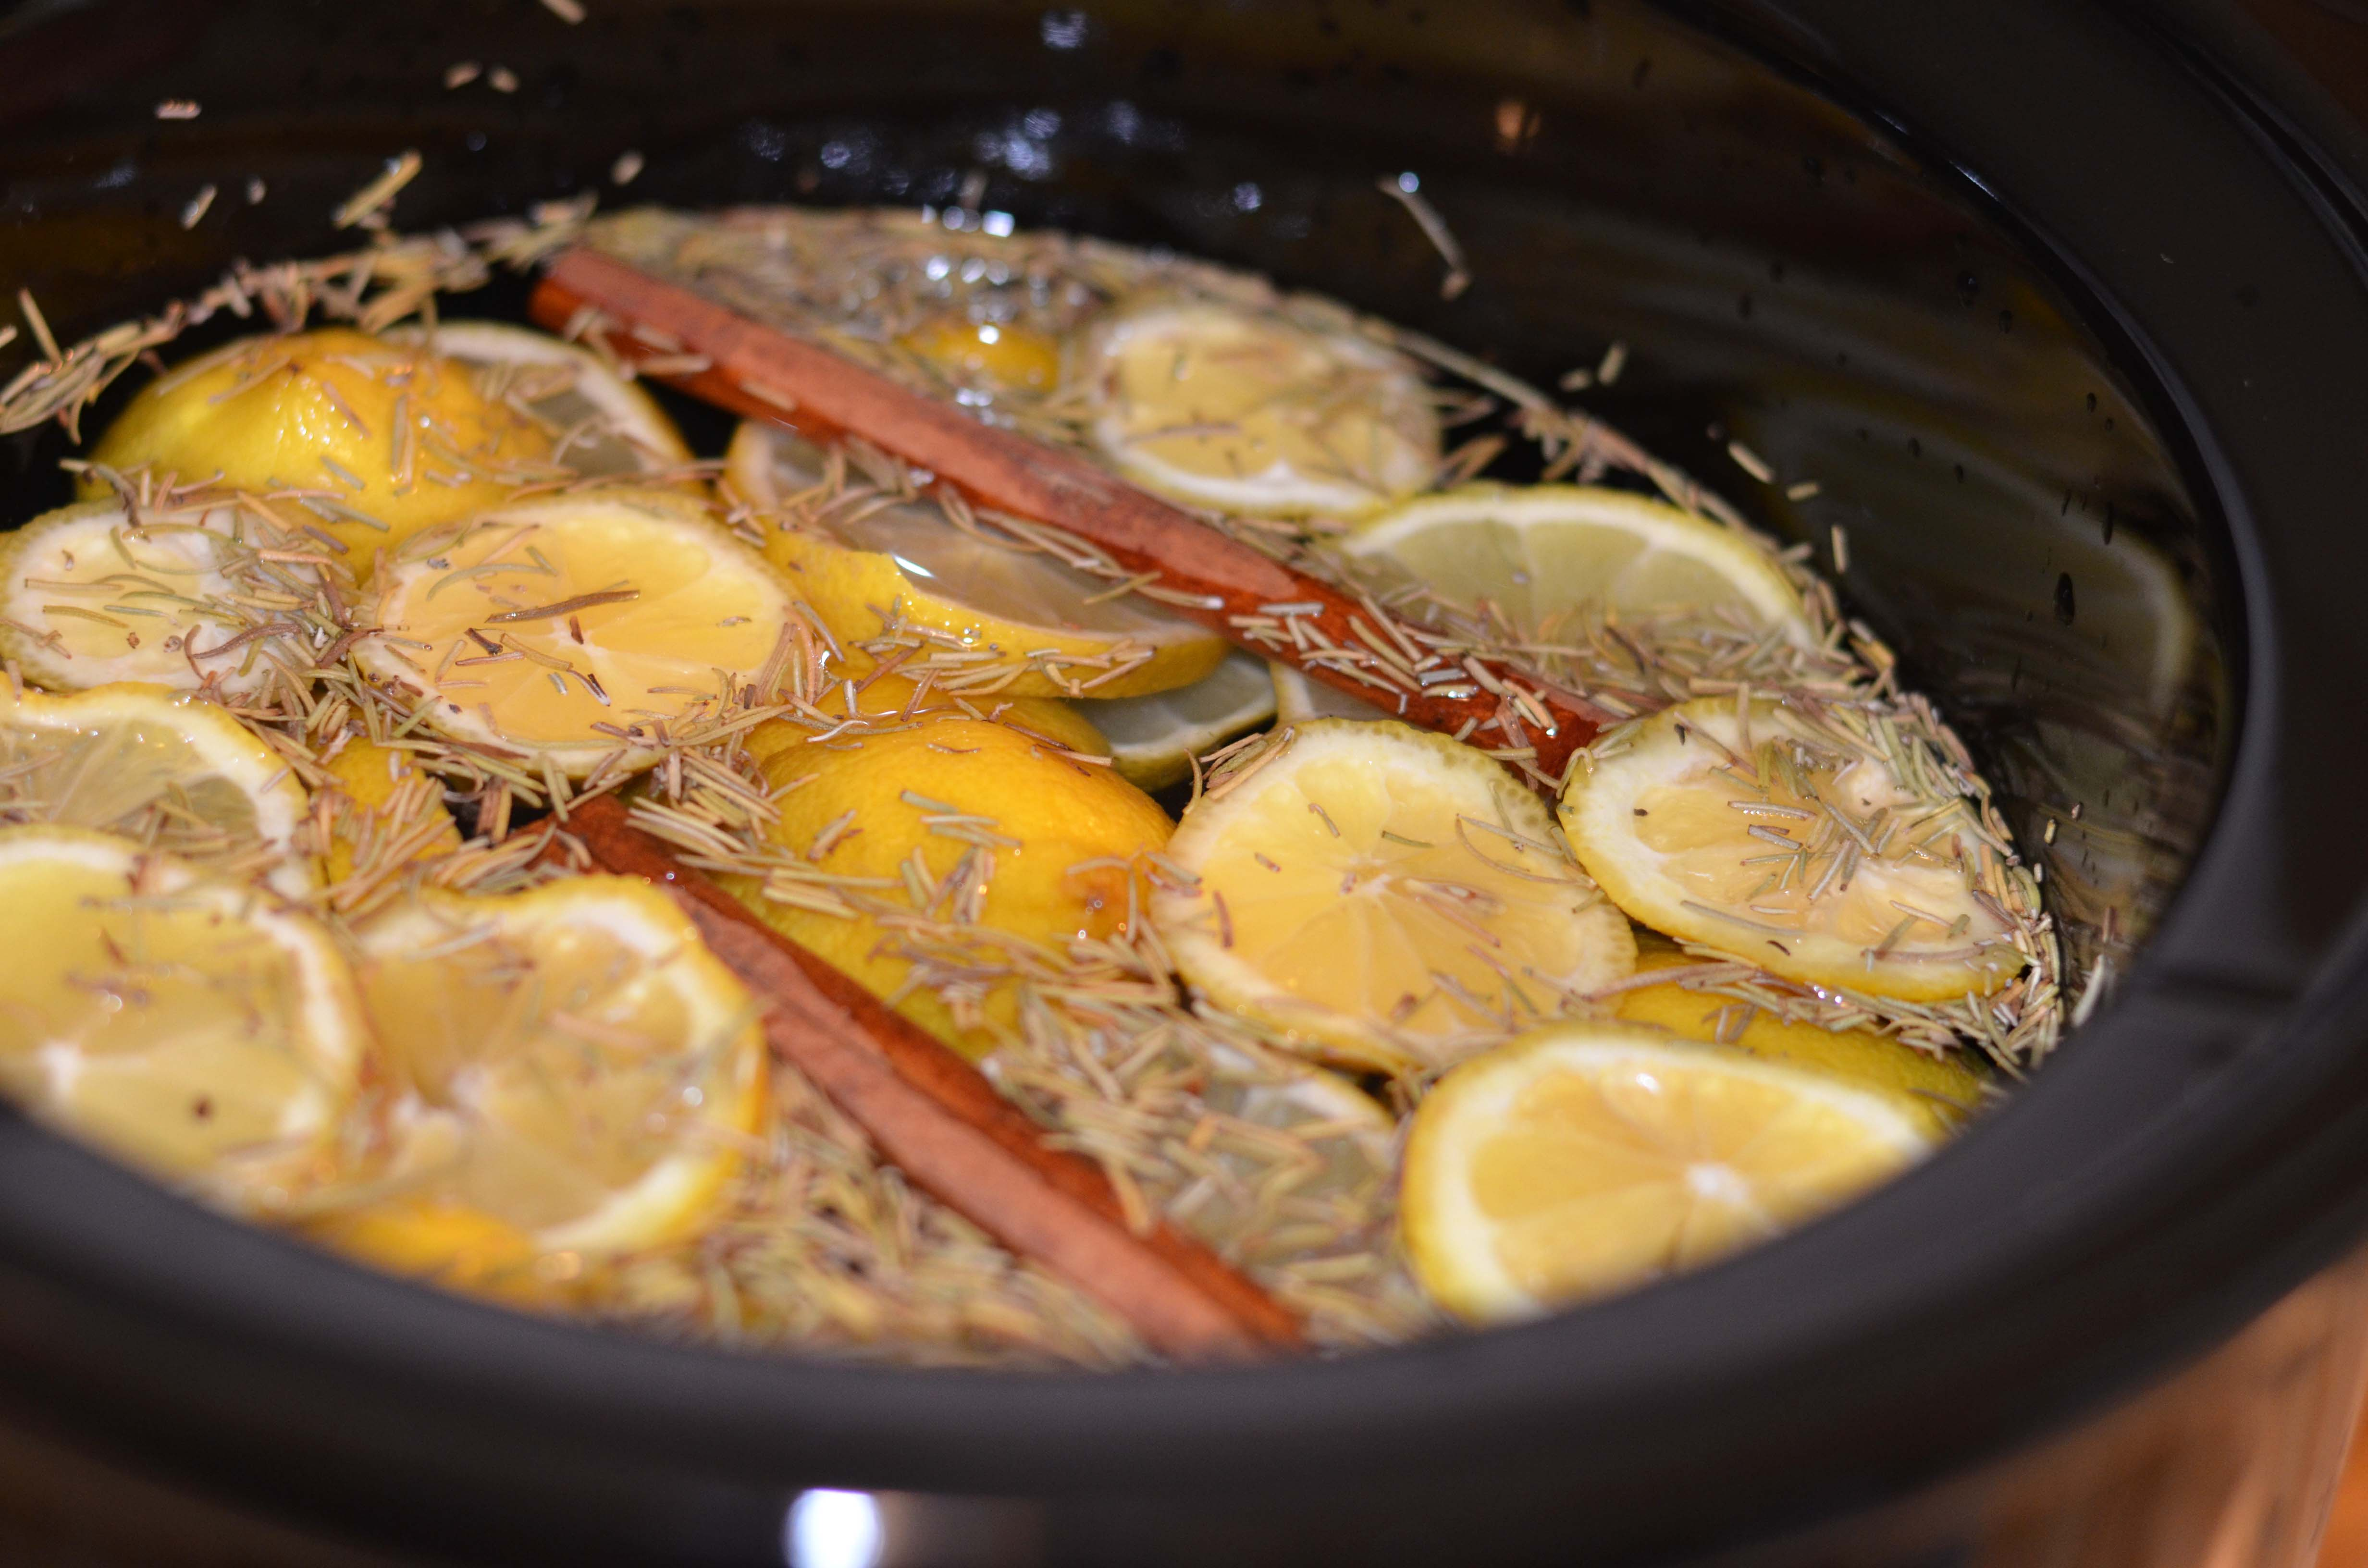 ... How To Make Your Home Smell Good, Stove Top Simmer Pot ...